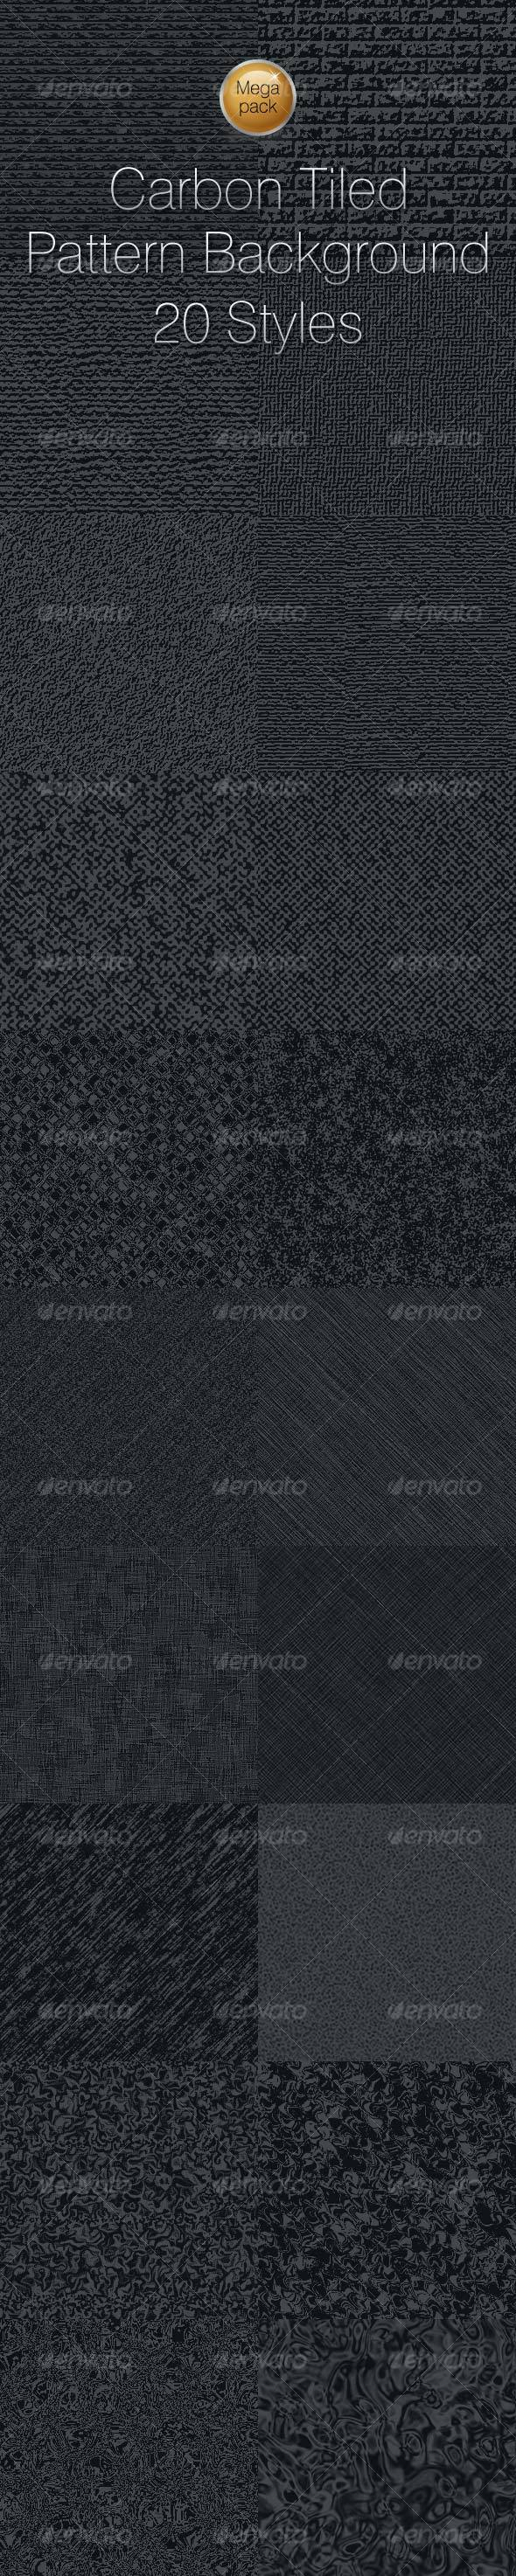 Carbon Tiled Pattern Textured Background Vol. 12 - Urban Textures / Fills / Patterns